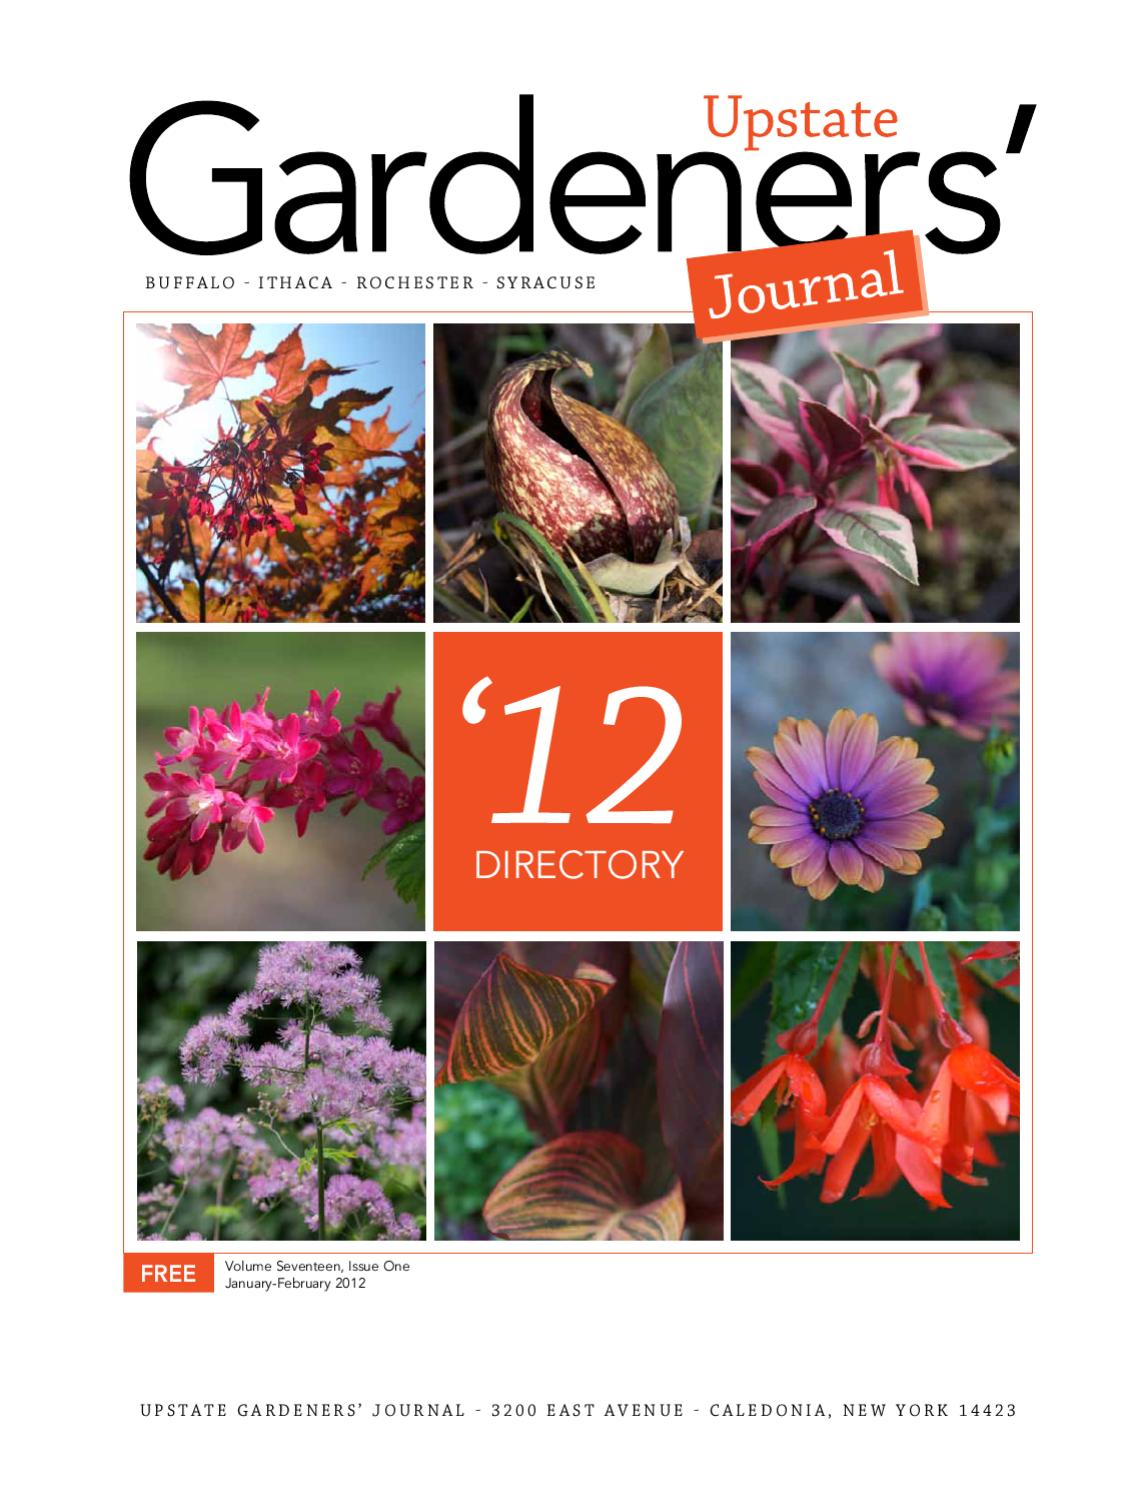 2012 Upstate Gardeners Journal Directory By